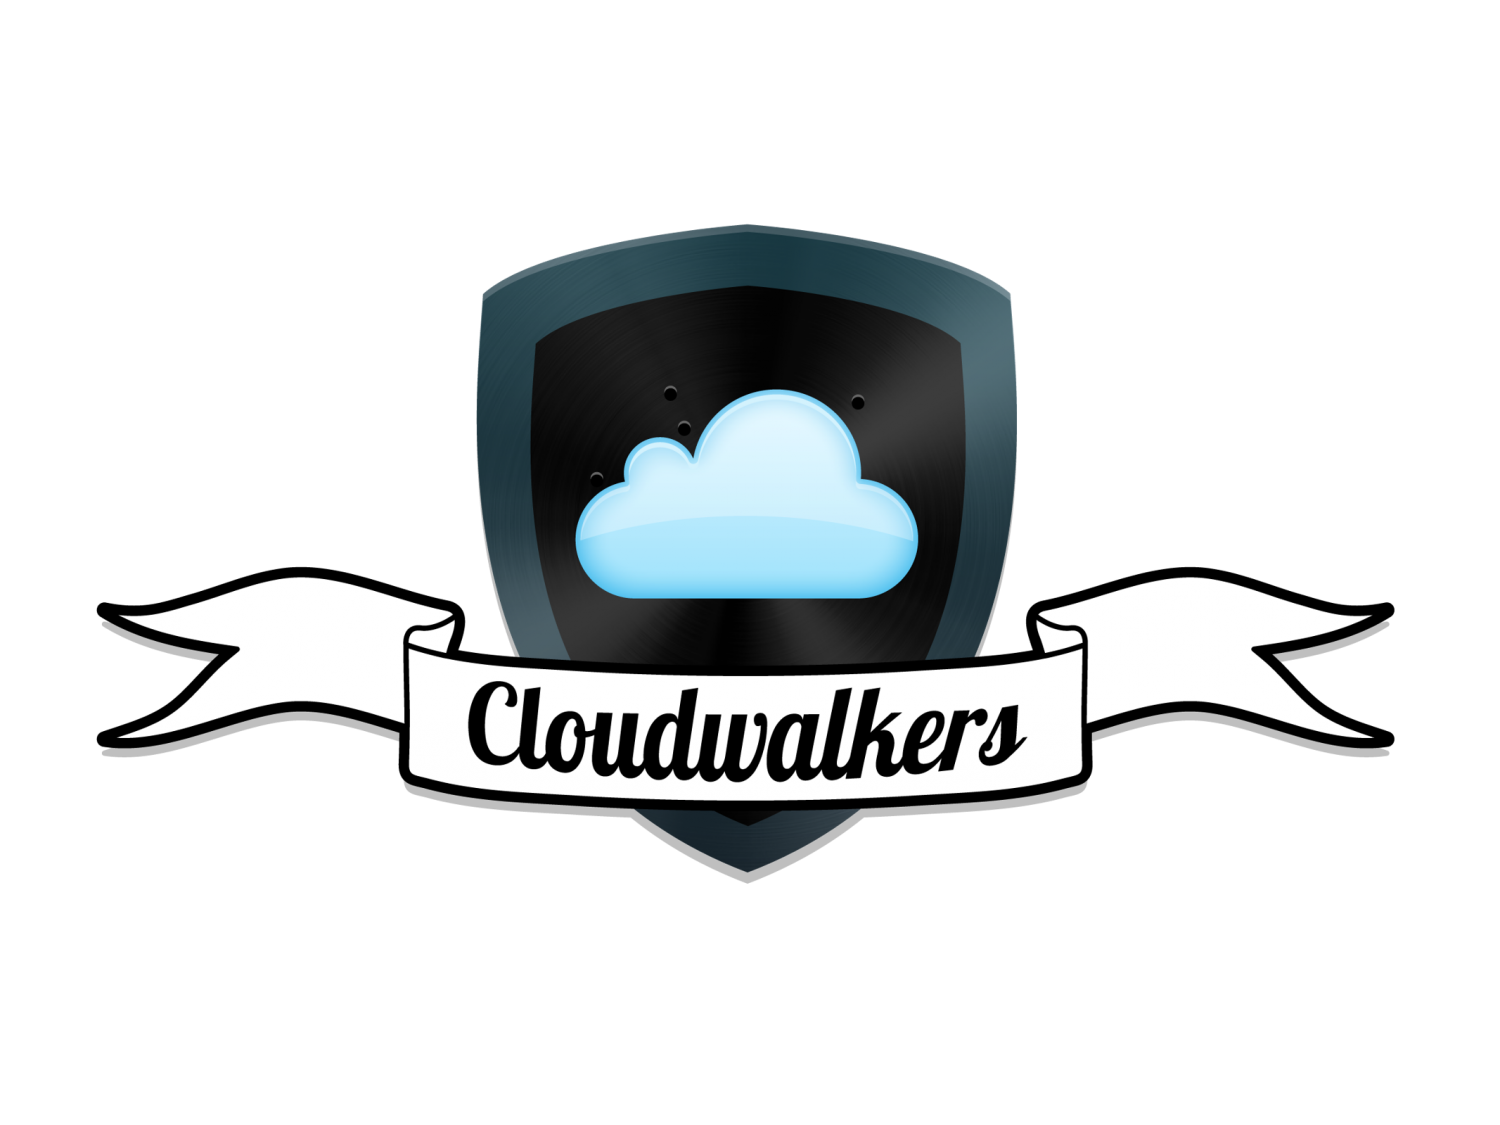 cloudwalkers-logo